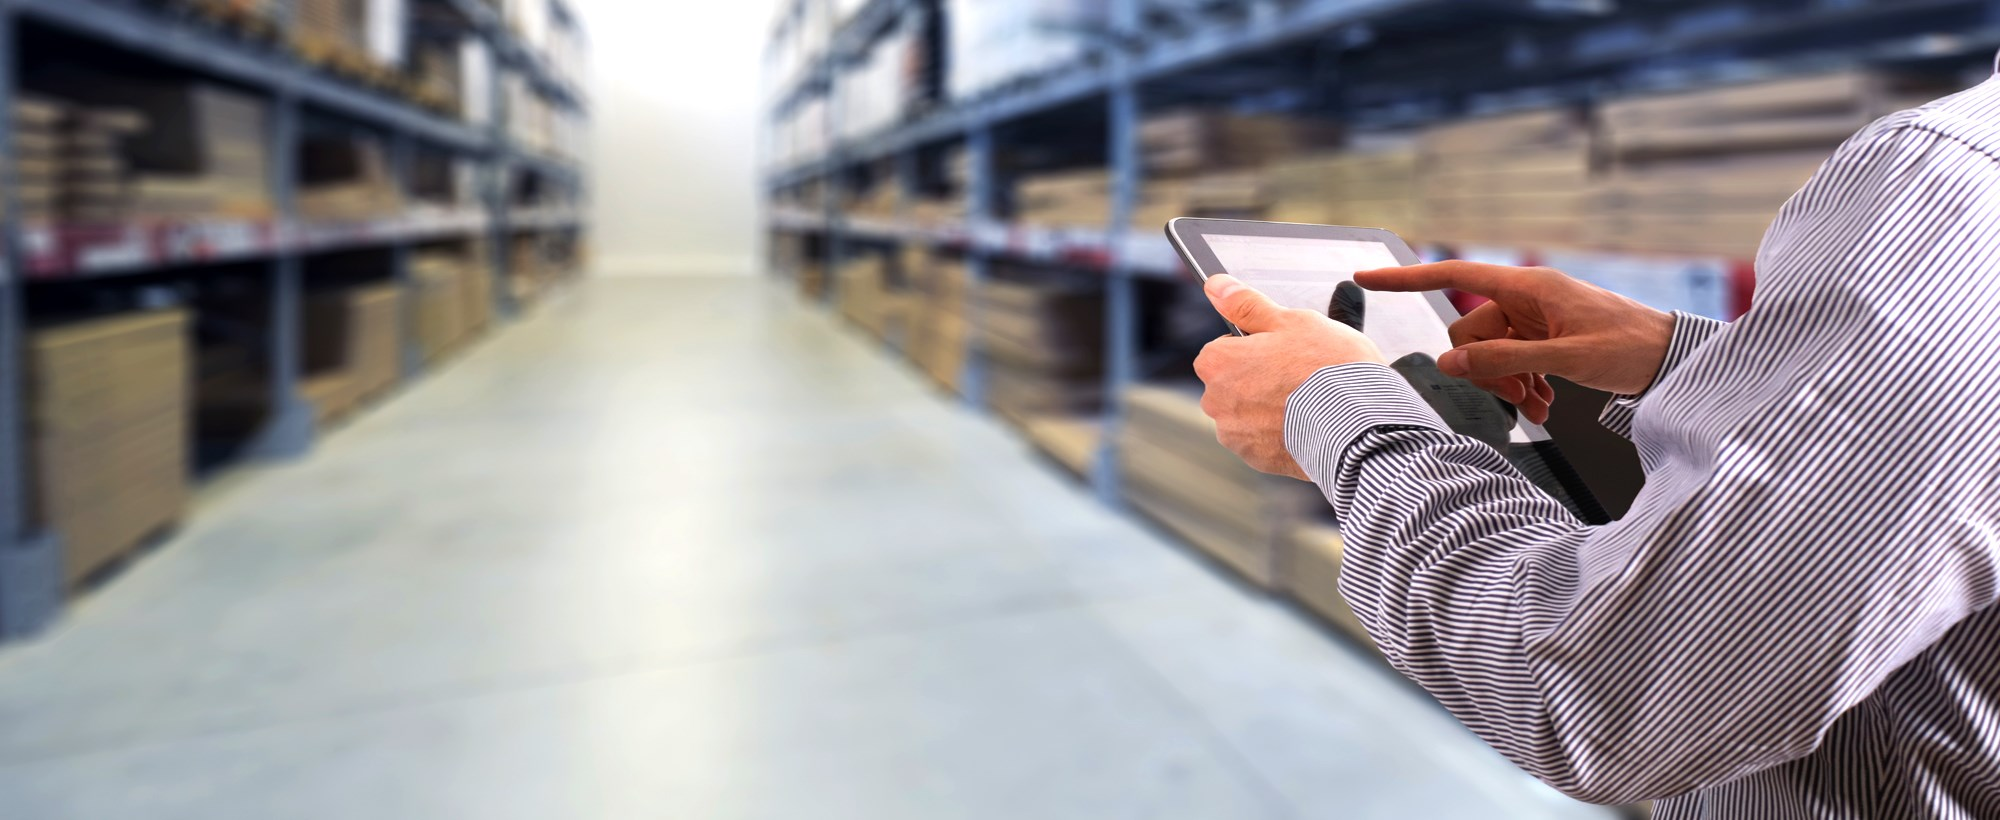 Modern barcode scanning from mobile to Dynamics NAV/Navision